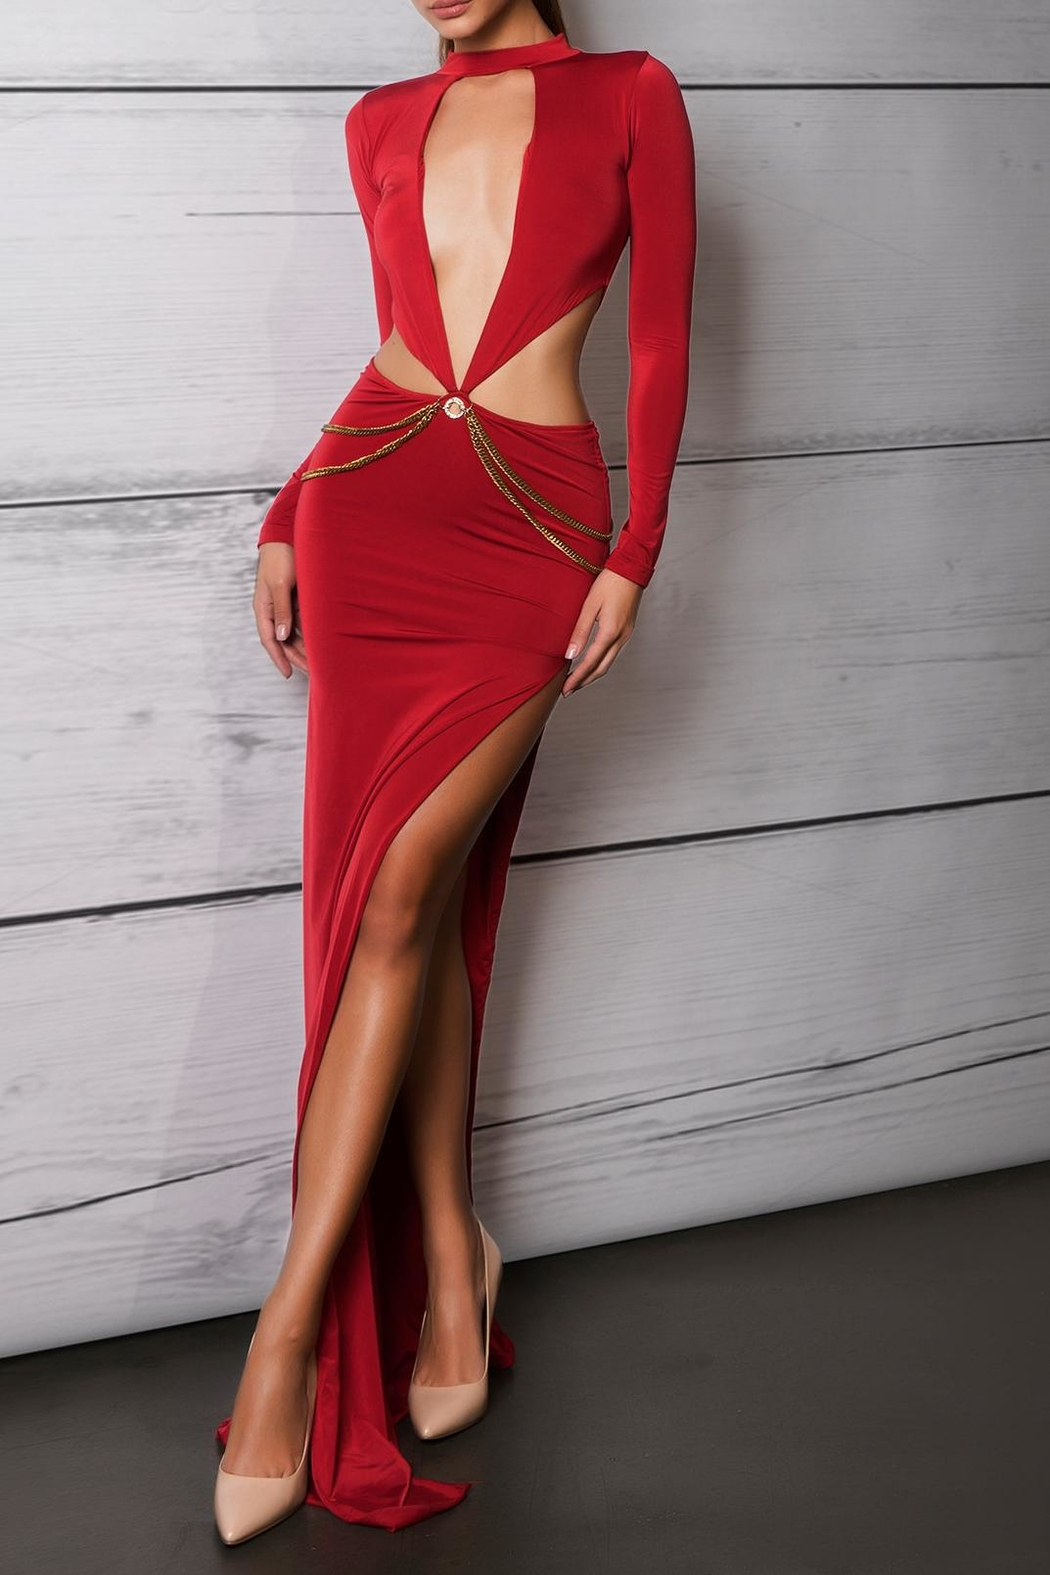 Savee Couture Red Cut Out Dress - Main Image